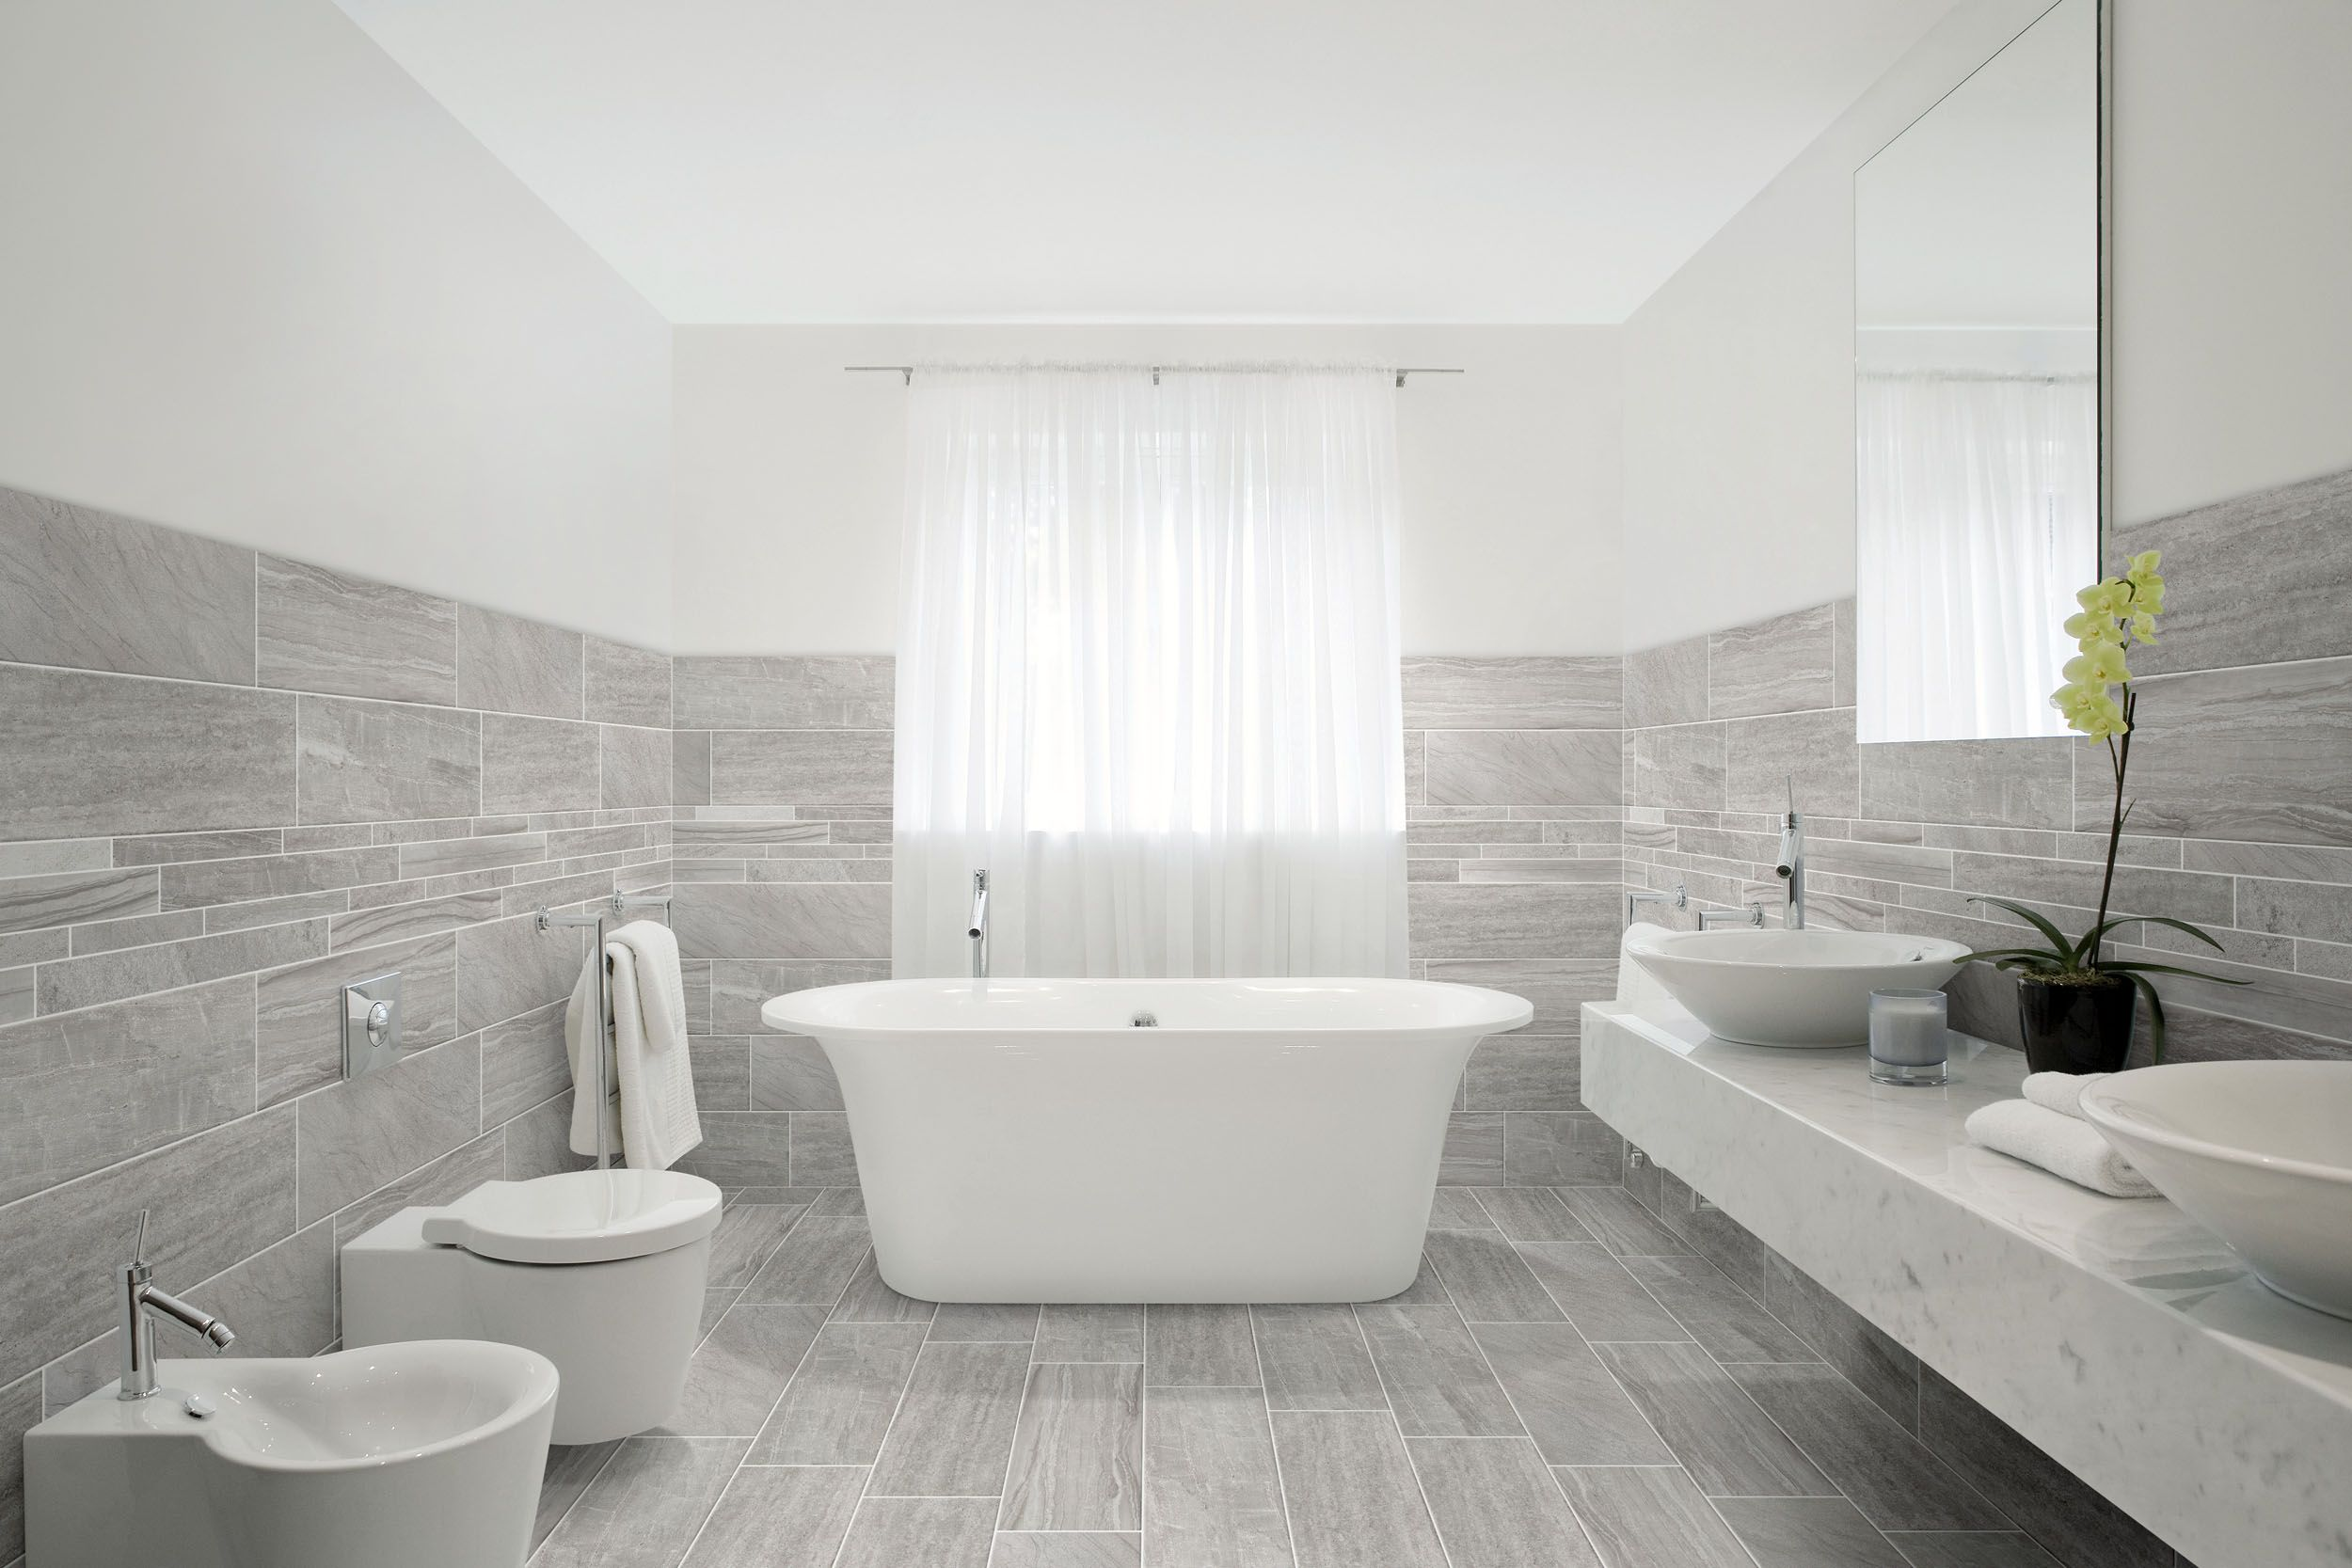 Wood Looking Tile Bathroom Porcelain Tile With Mixed Look Of Wood Stone And Concrete From